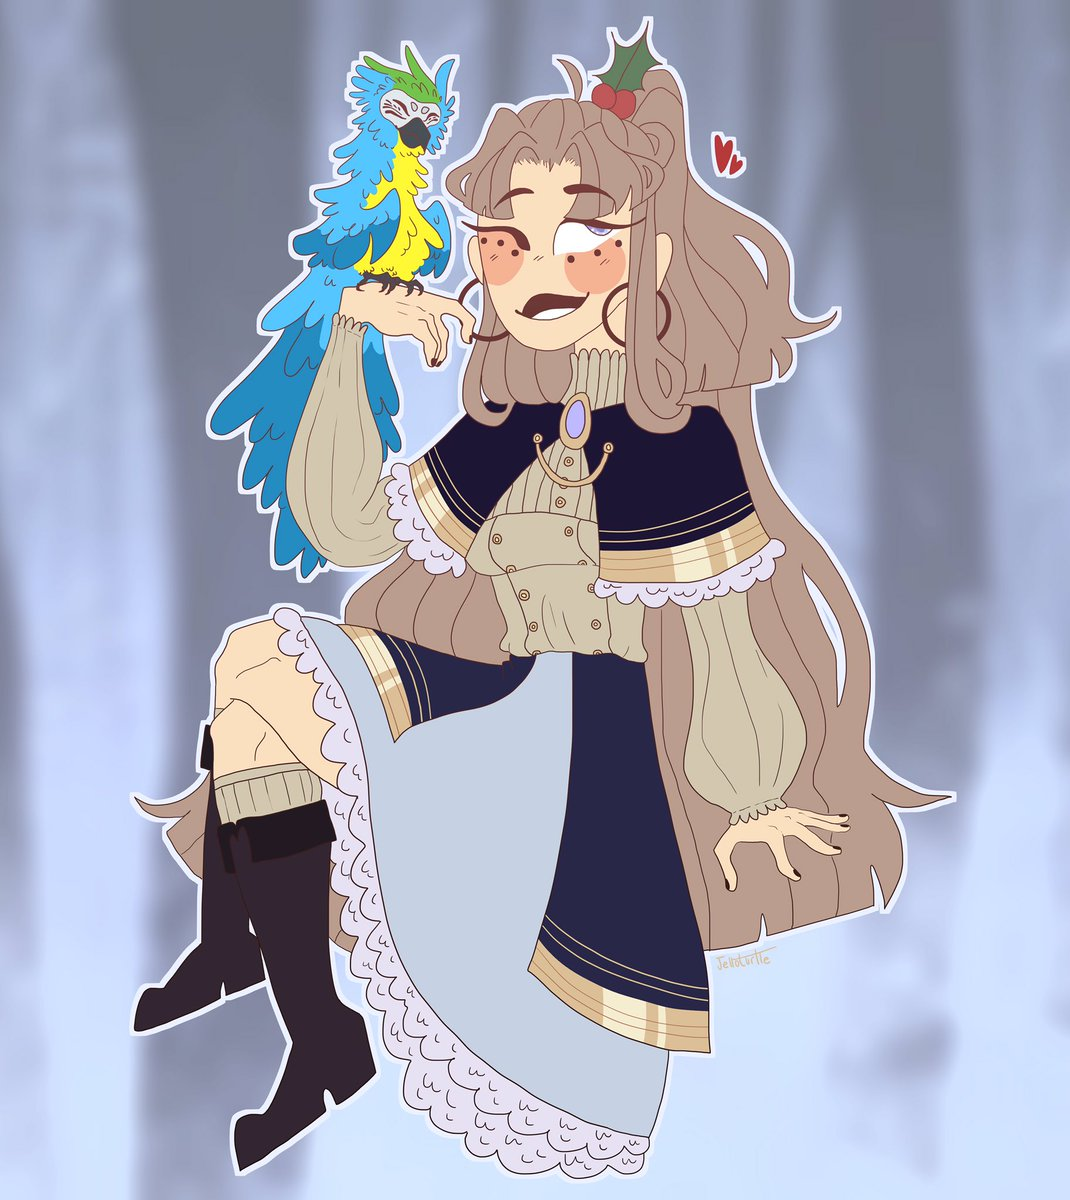 My girl jelly in the winter ball get up :))  - - - - @thearcanagame #thearcana #thearcanagame #arcanafanapprentice #thearcanafanapprentice #oc #thearcanaocpic.twitter.com/3UBf7VRRHC